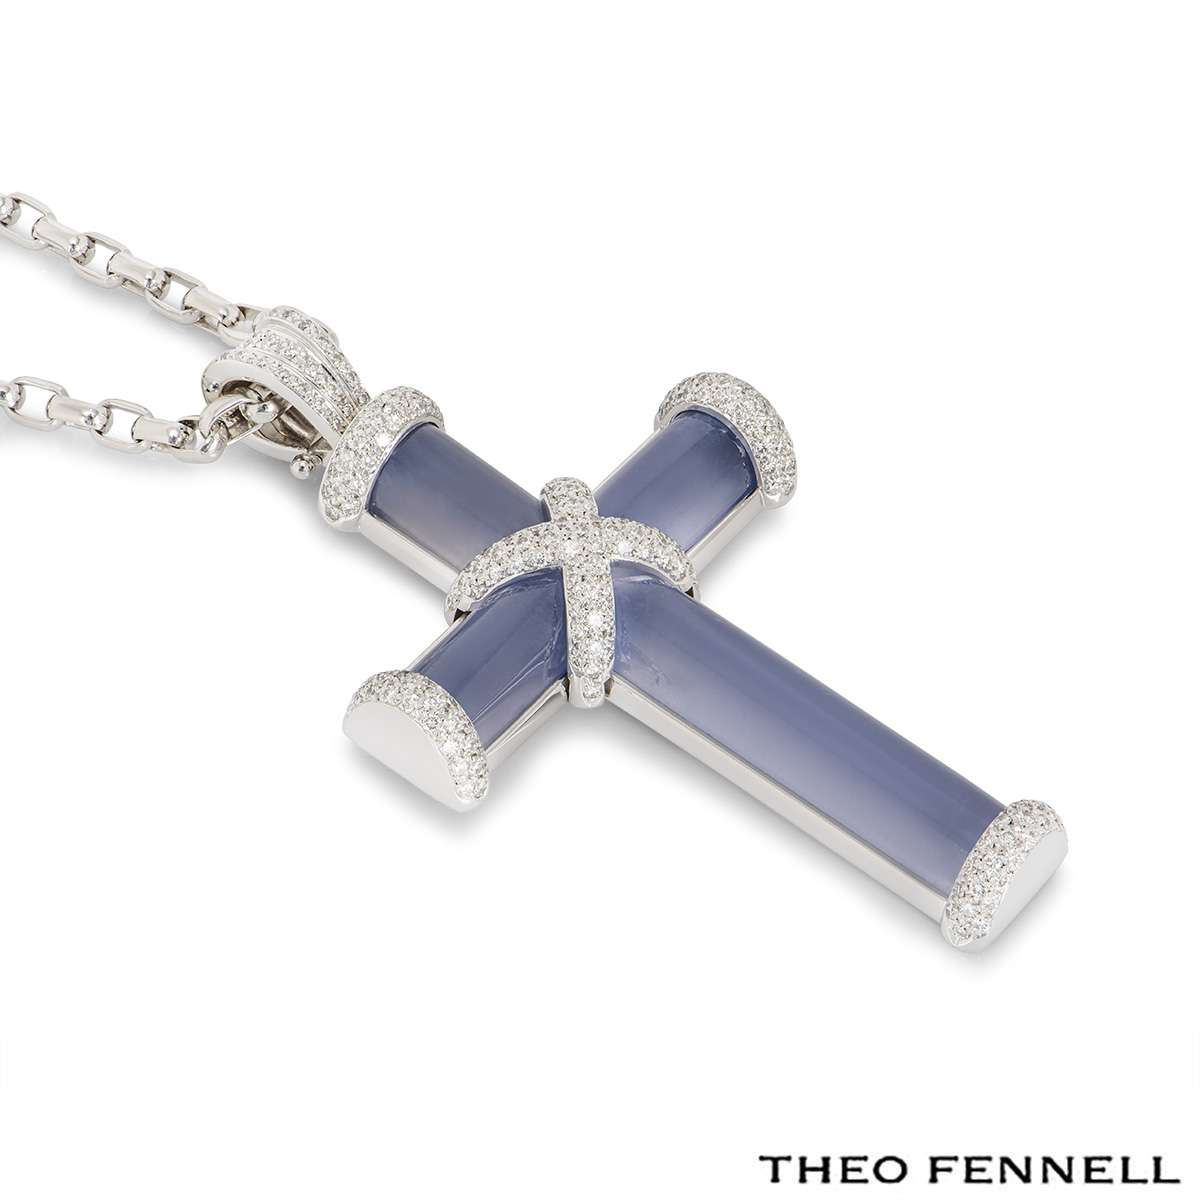 Theo Fennell White Gold Cross Pendant